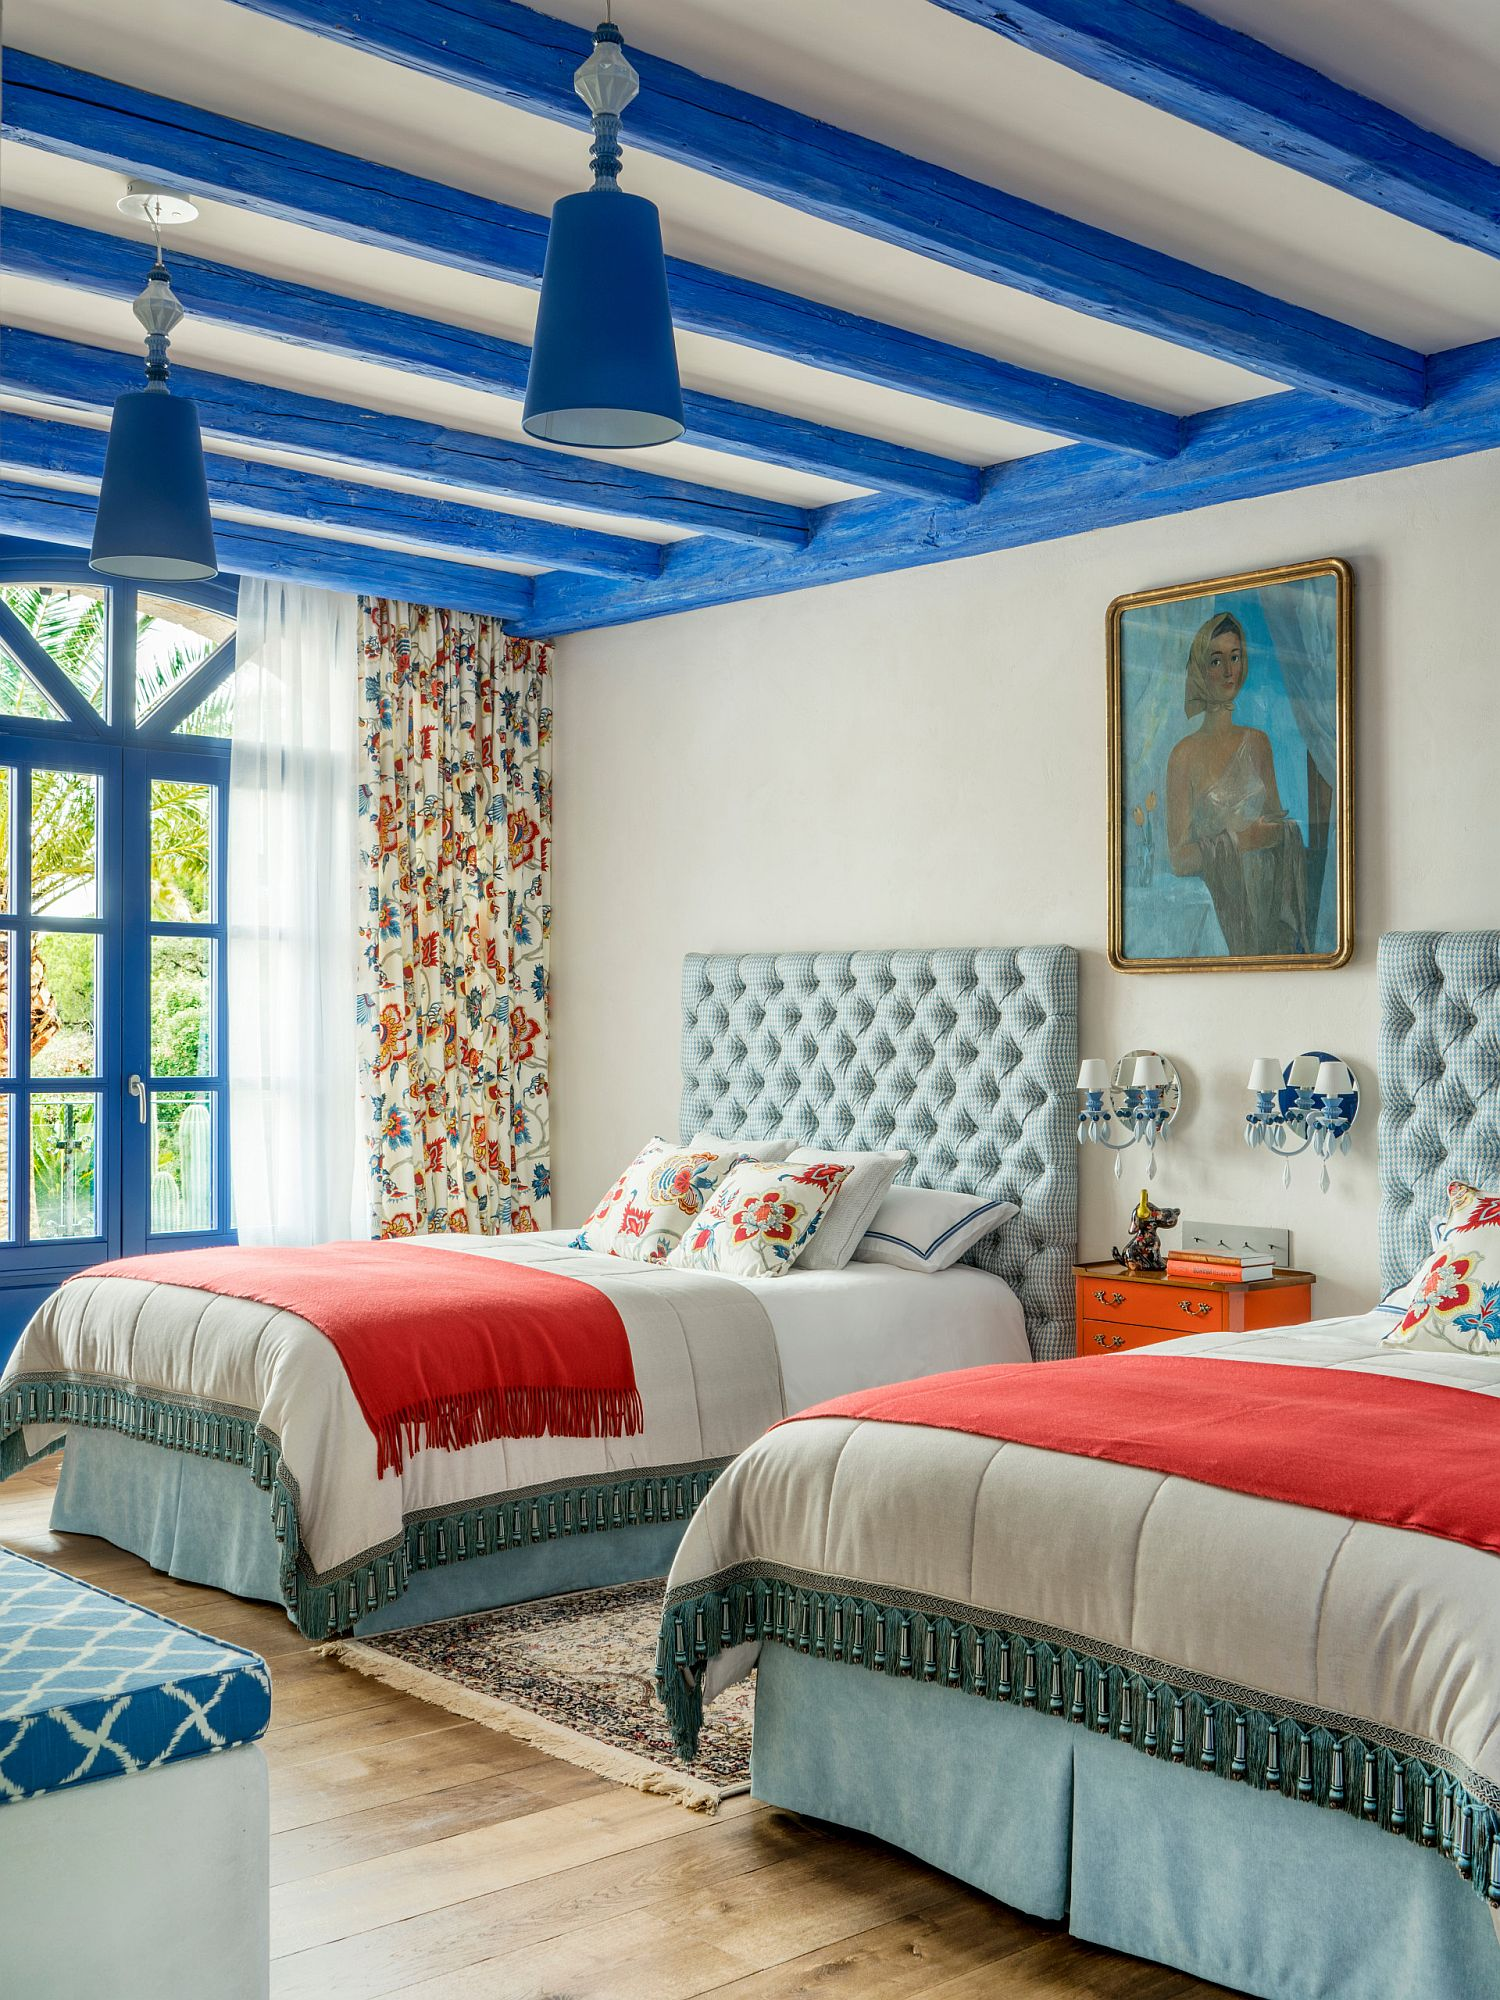 Gorgeous ceiling beams in blue bring color to the spacious modern Mediterranean kids' room